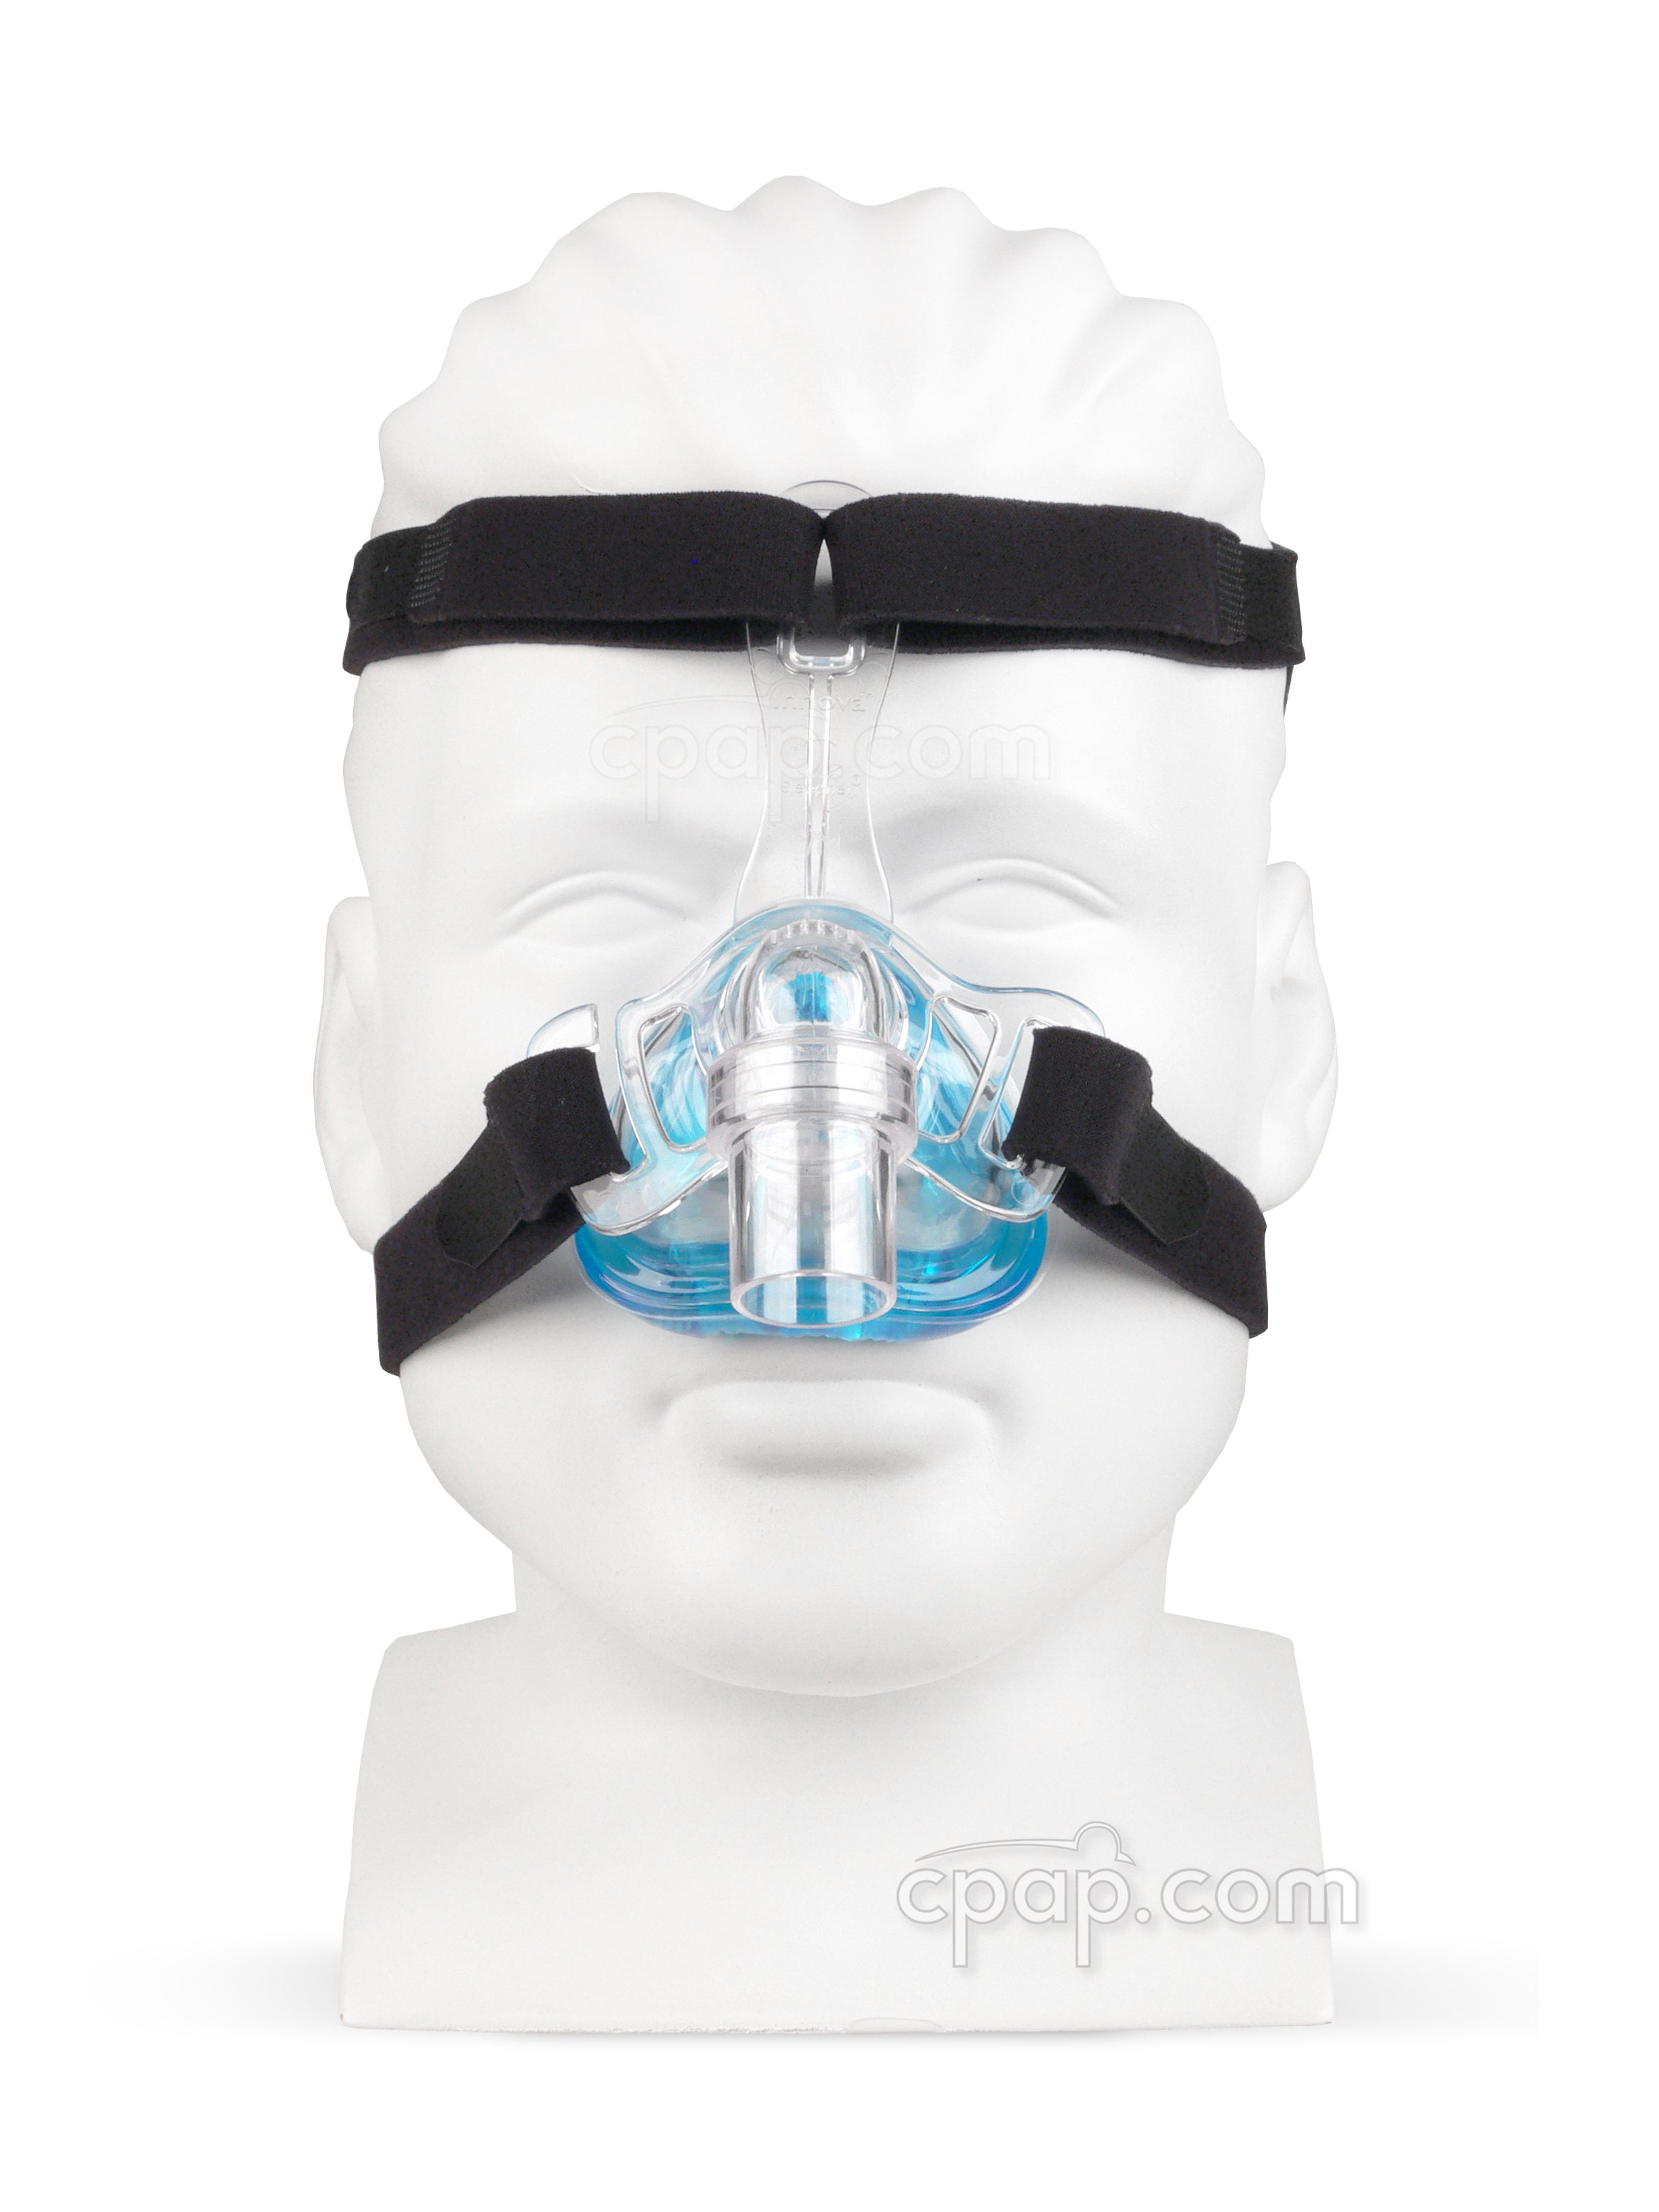 Innova Nasal CPAP Mask with Headgear - Front - Shown on Mannequin (Not Included)